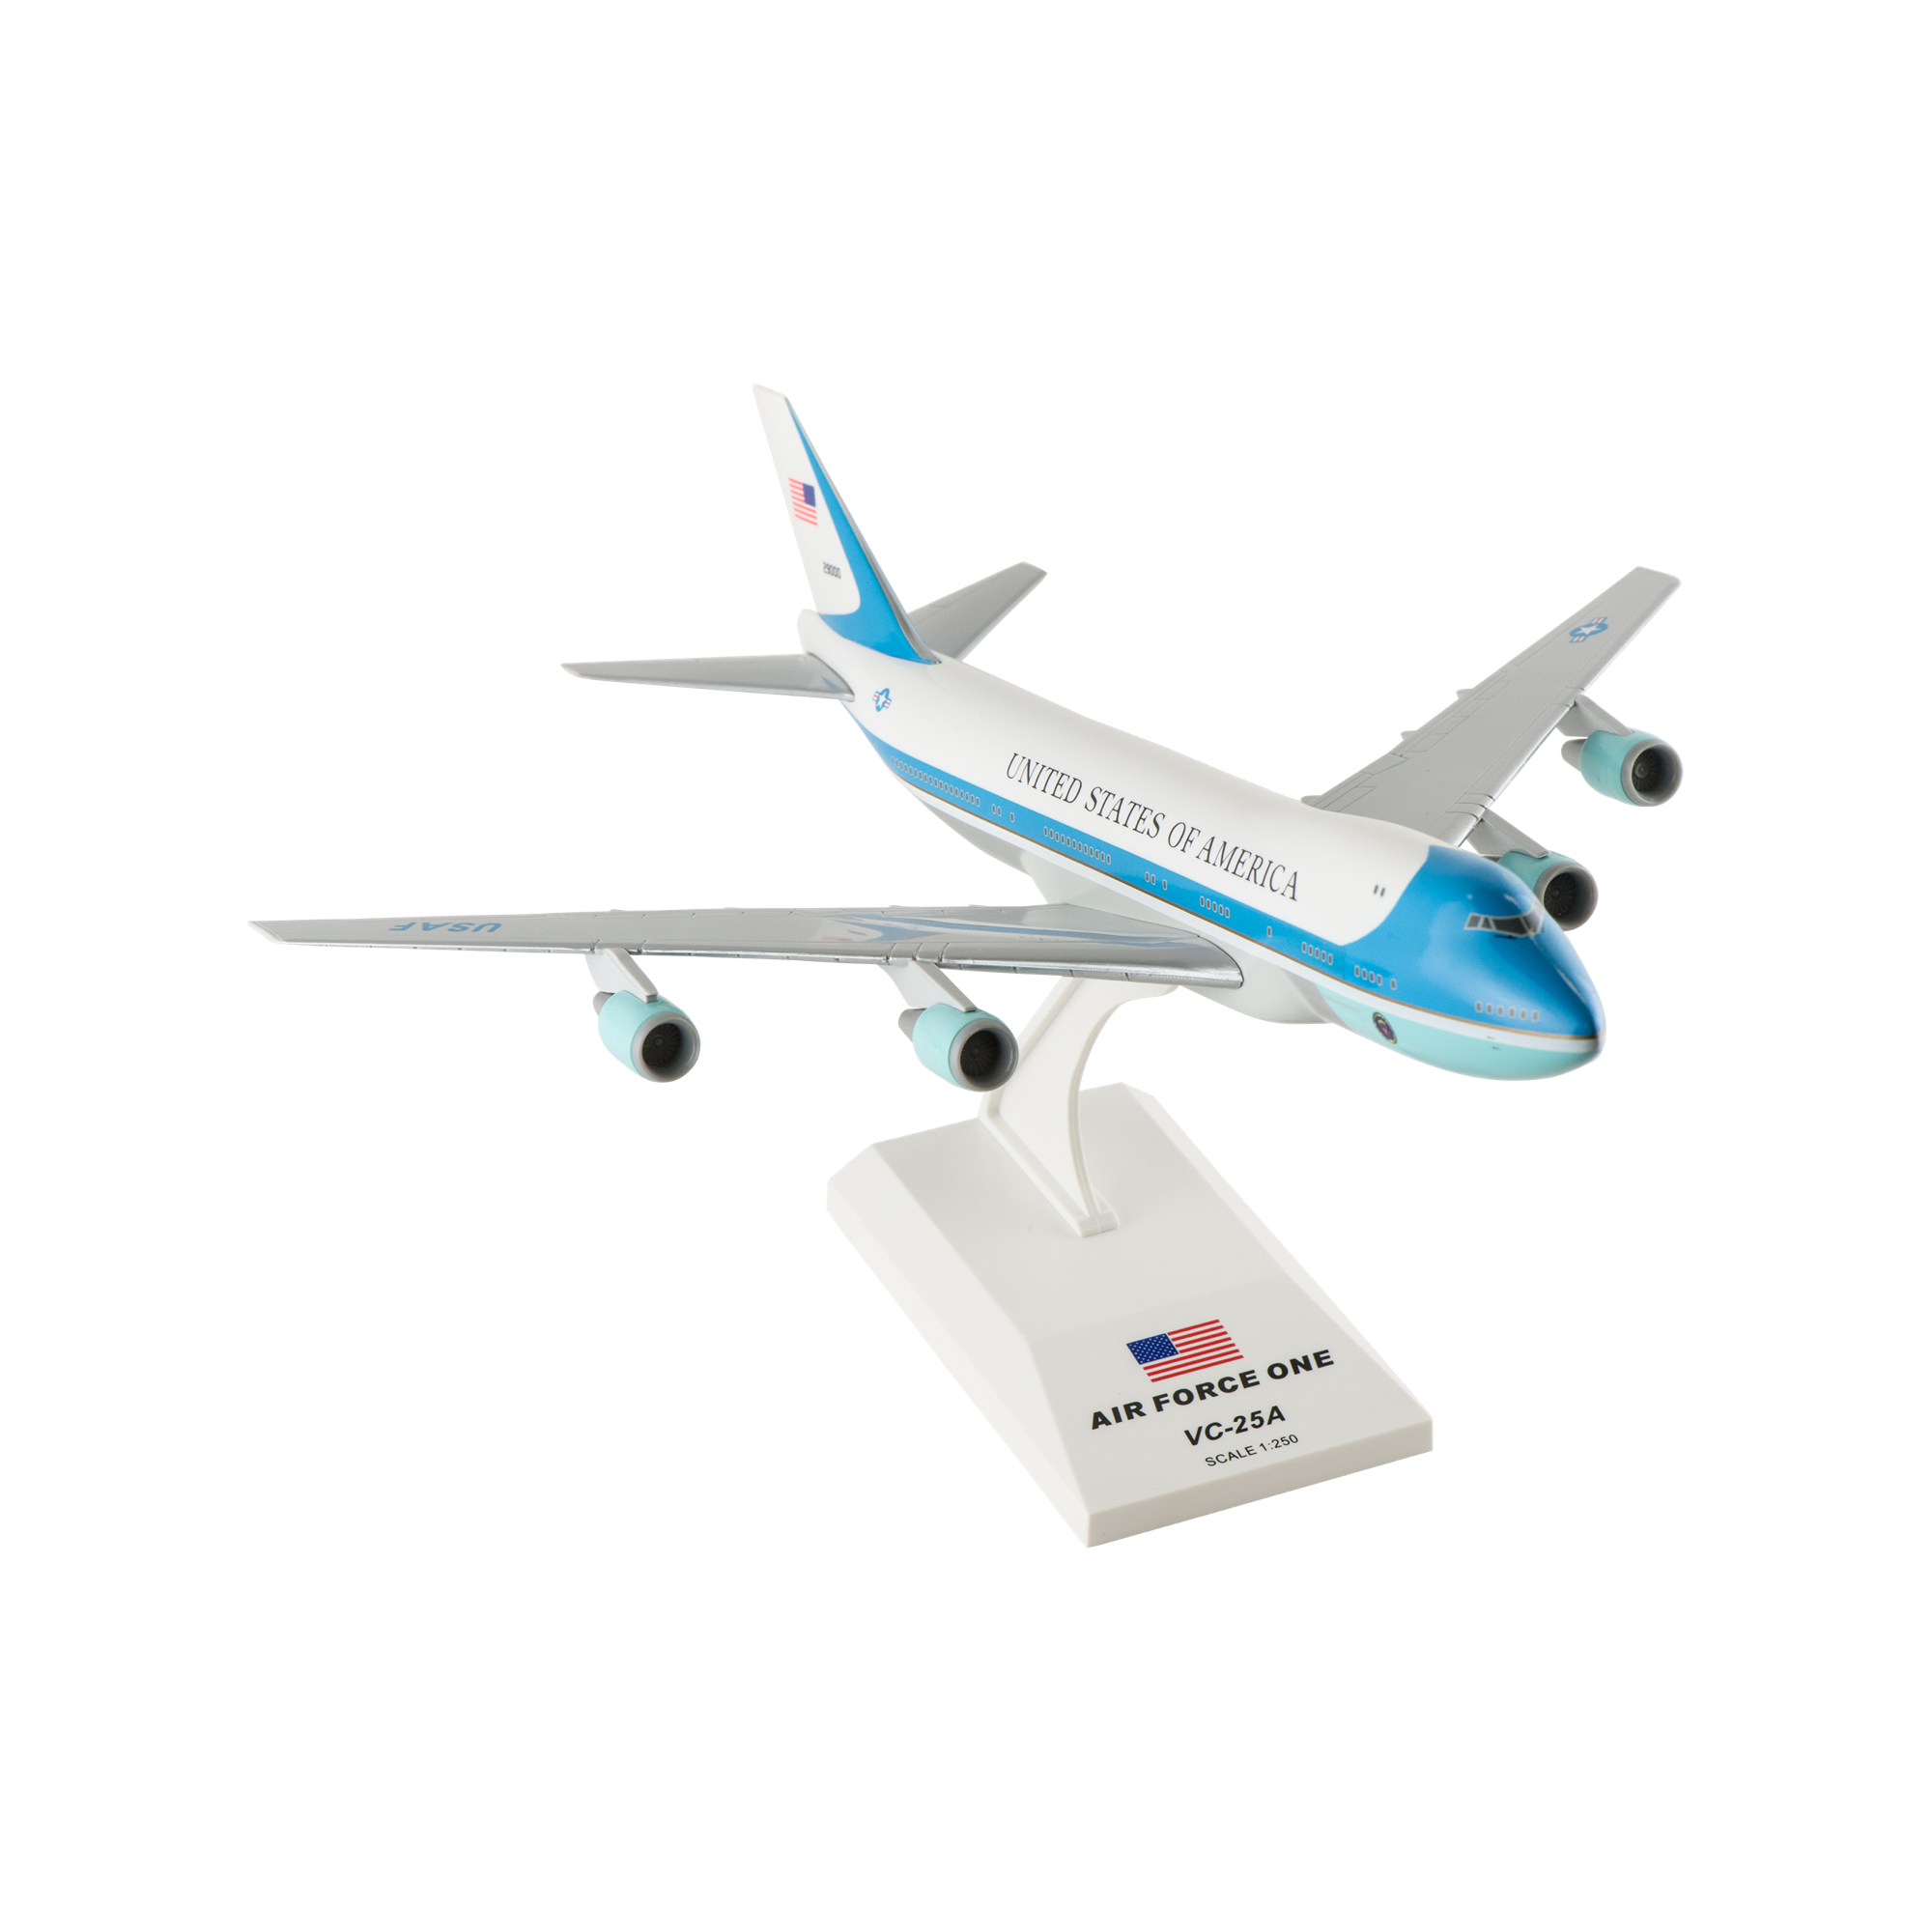 Air Force One Model Plane White House Historical Association